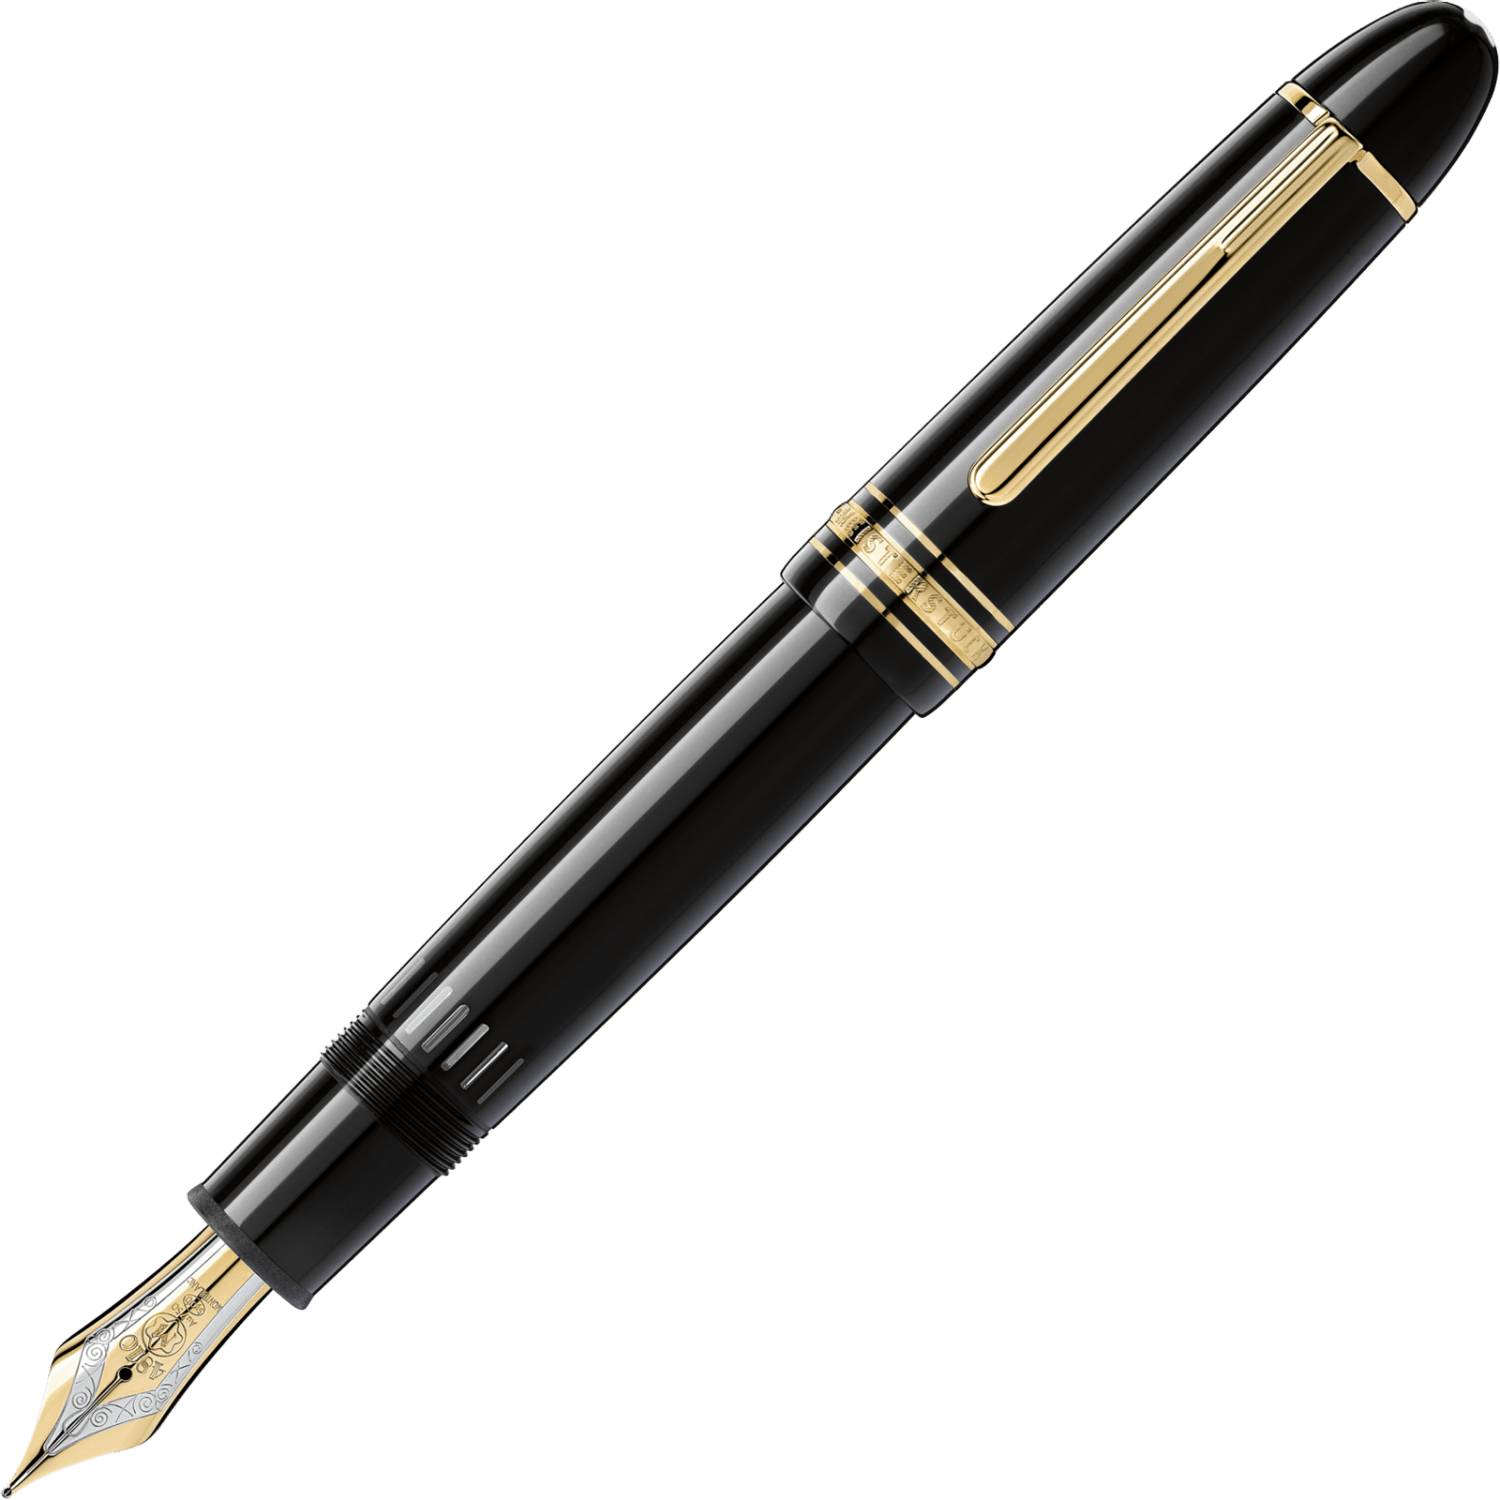 Image result for Montblanc Meisterstuck 149 Fountain Pen Gold & Black